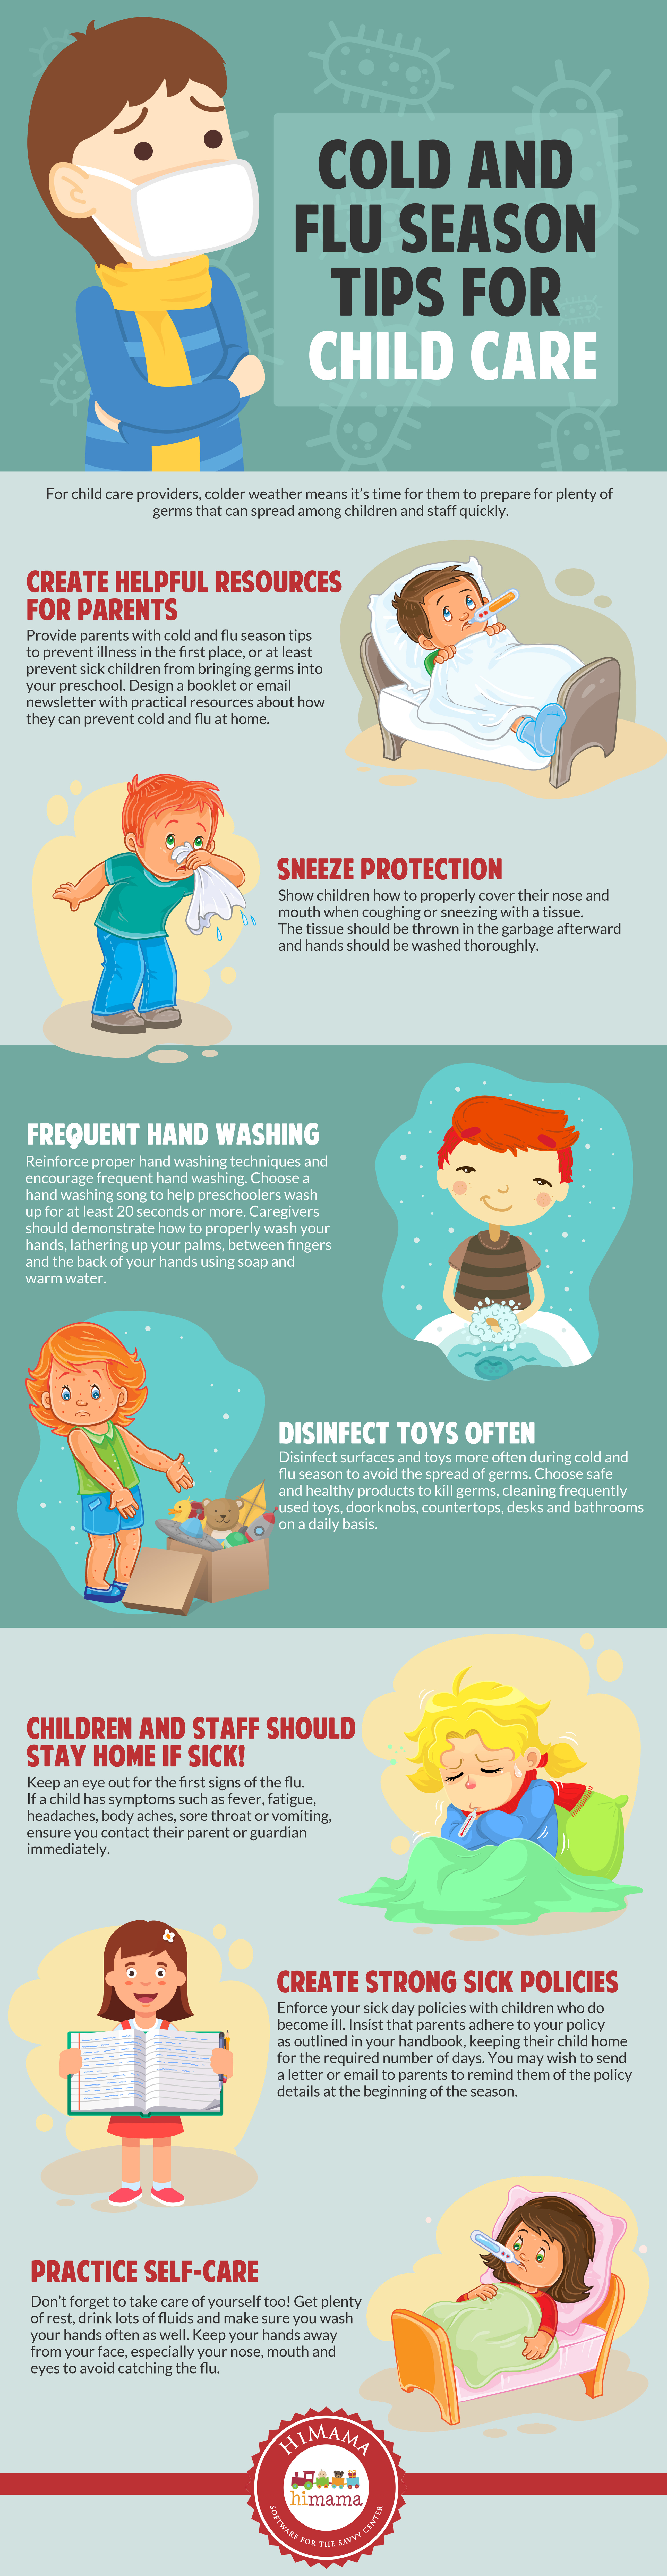 cold-and-flu-season-tips-for-child-care.